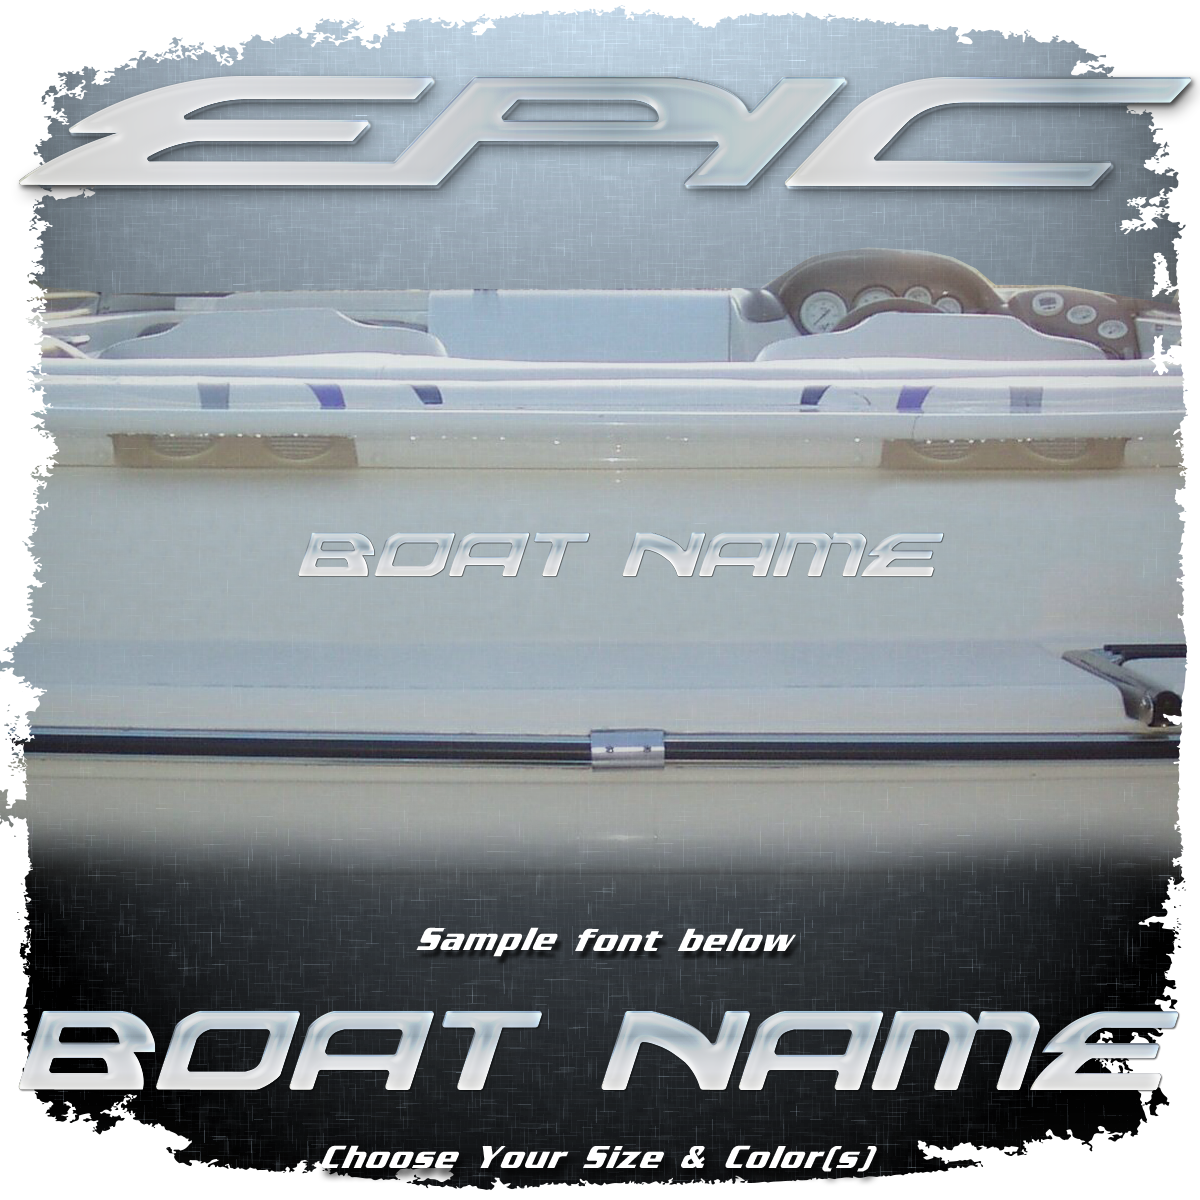 Domed Boat Name in the Epic Font, Choose Your Own Colors